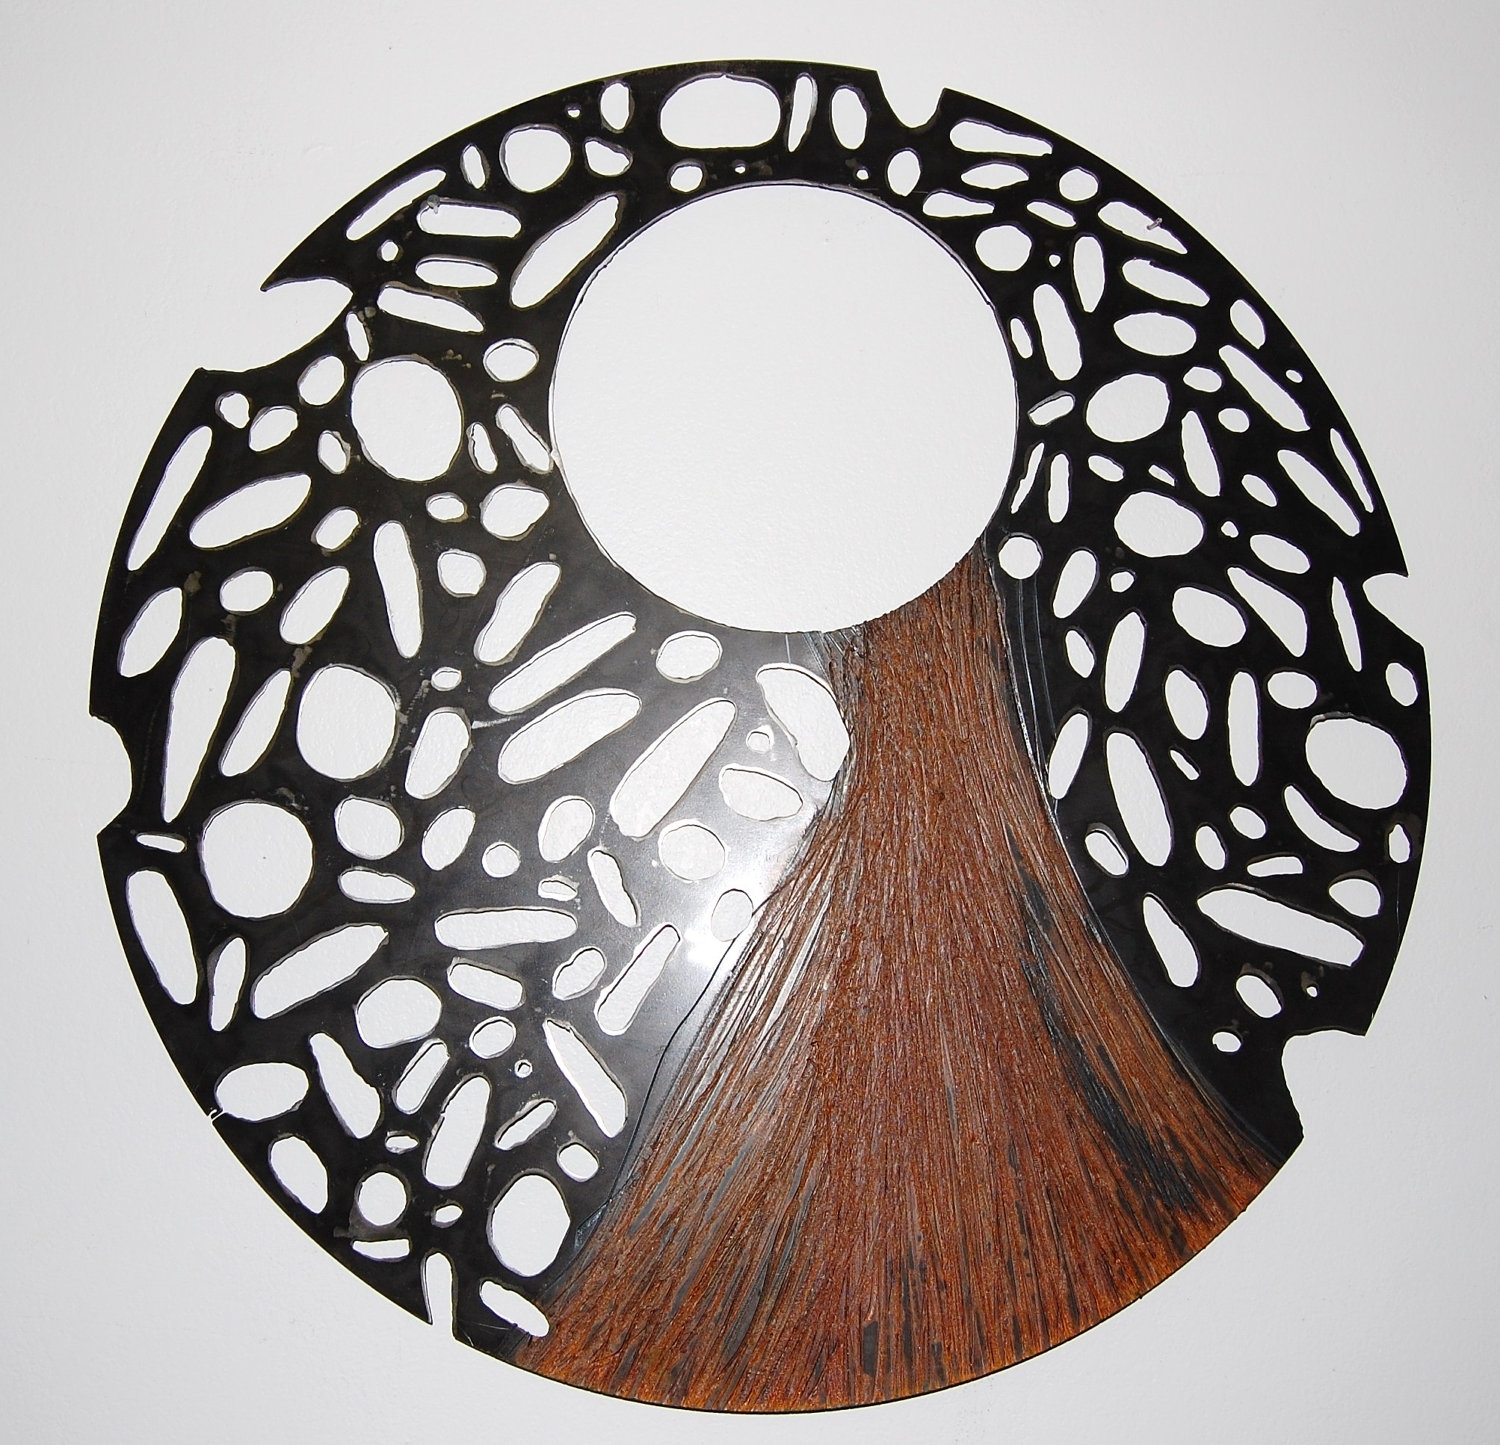 Large Steel Sculpture,recycled Metal Wall Art, Round Perforated Inside Current Abstract Outdoor Wall Art (View 8 of 20)